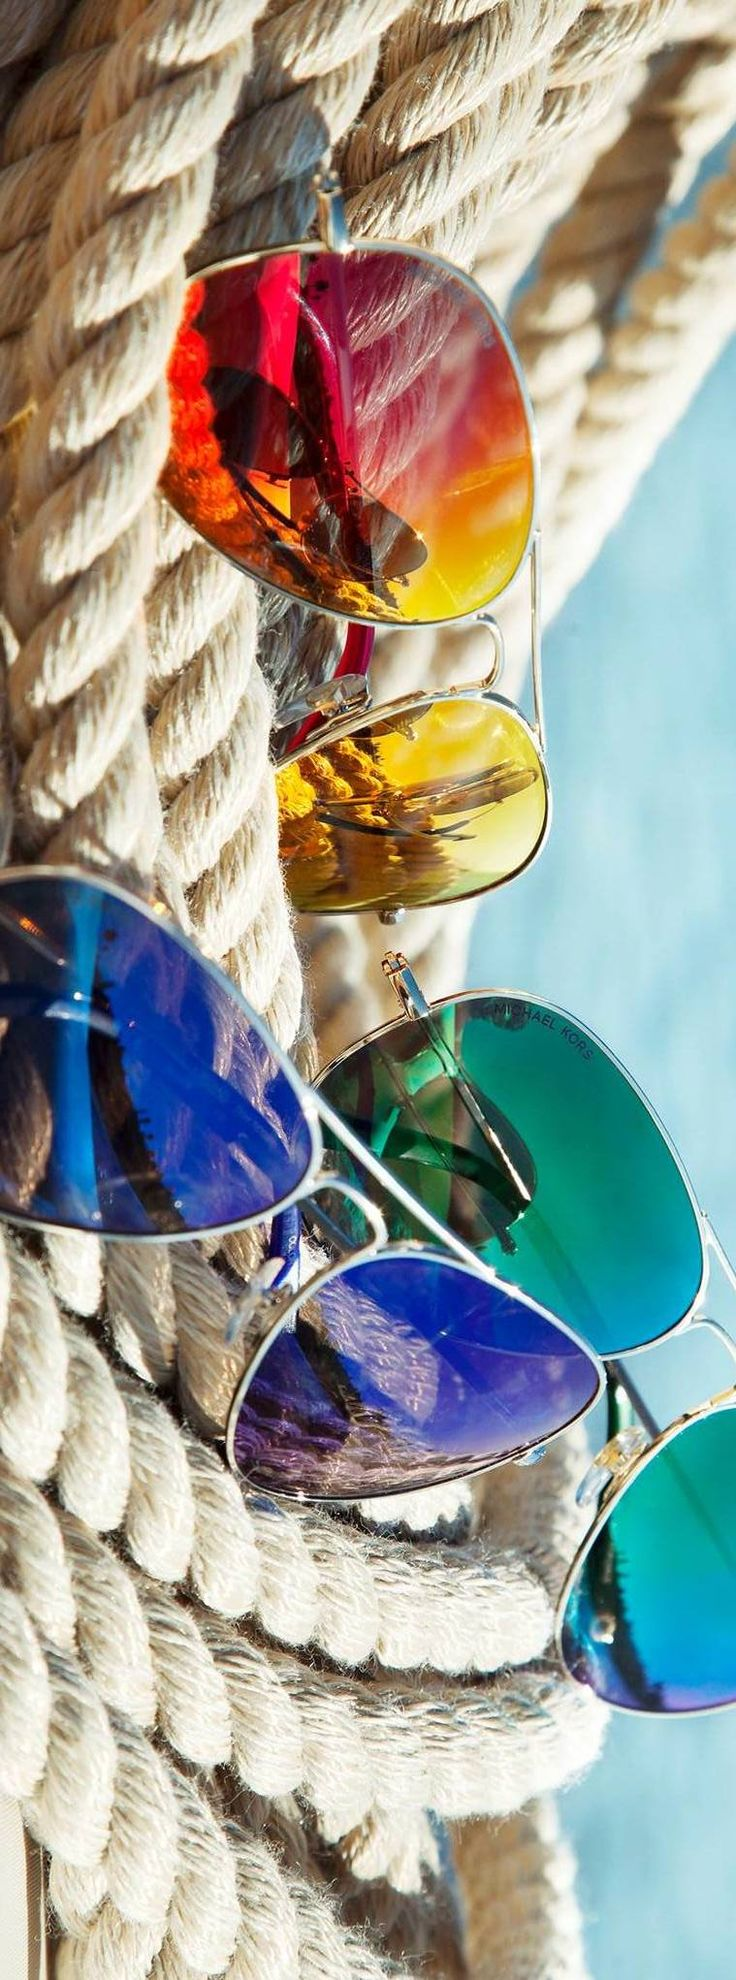 ray ban outlet online,fashion 2015 ray ban sunglasses clearance $12.00 !!!